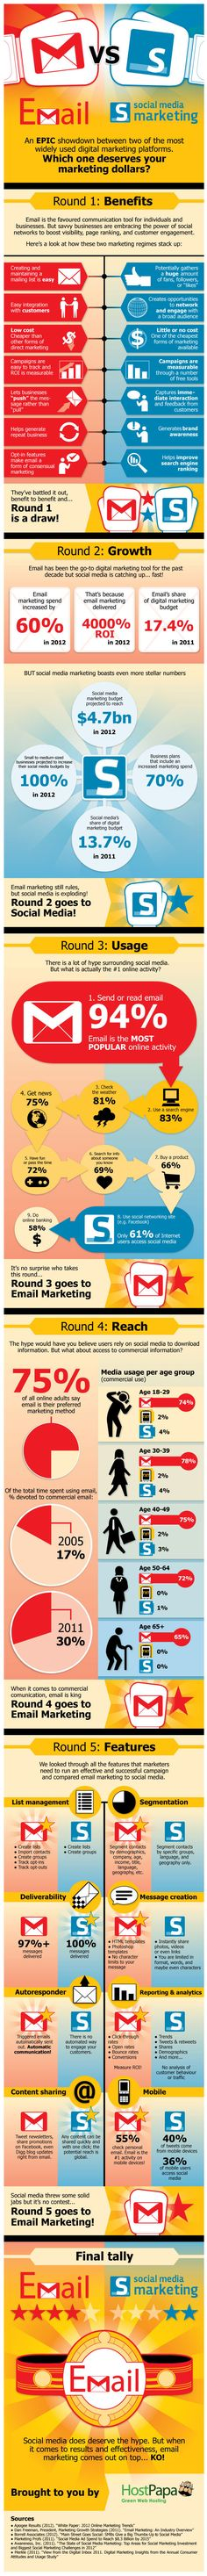 Email vs Social Media Marketing - #infographic